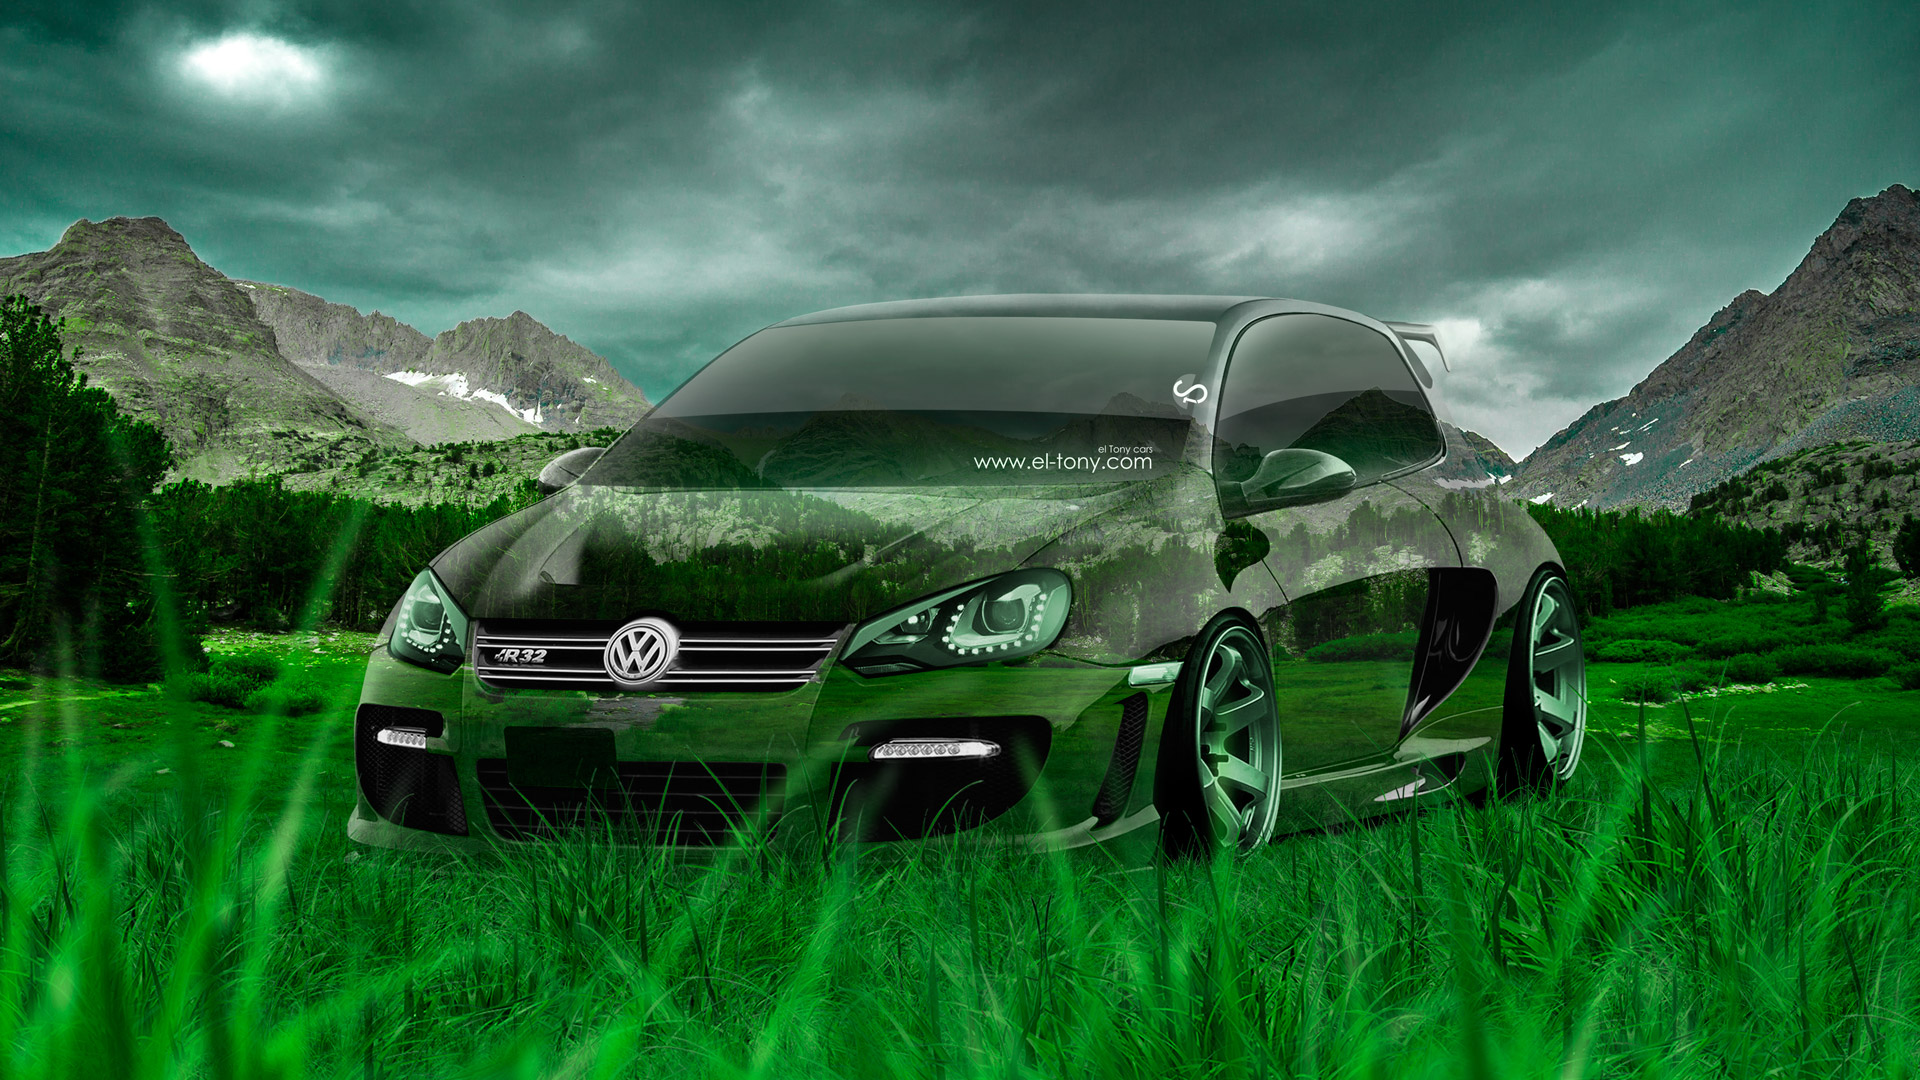 Exceptional Volkswagen Golf R32 Tuning Crystal Nature Car 2014